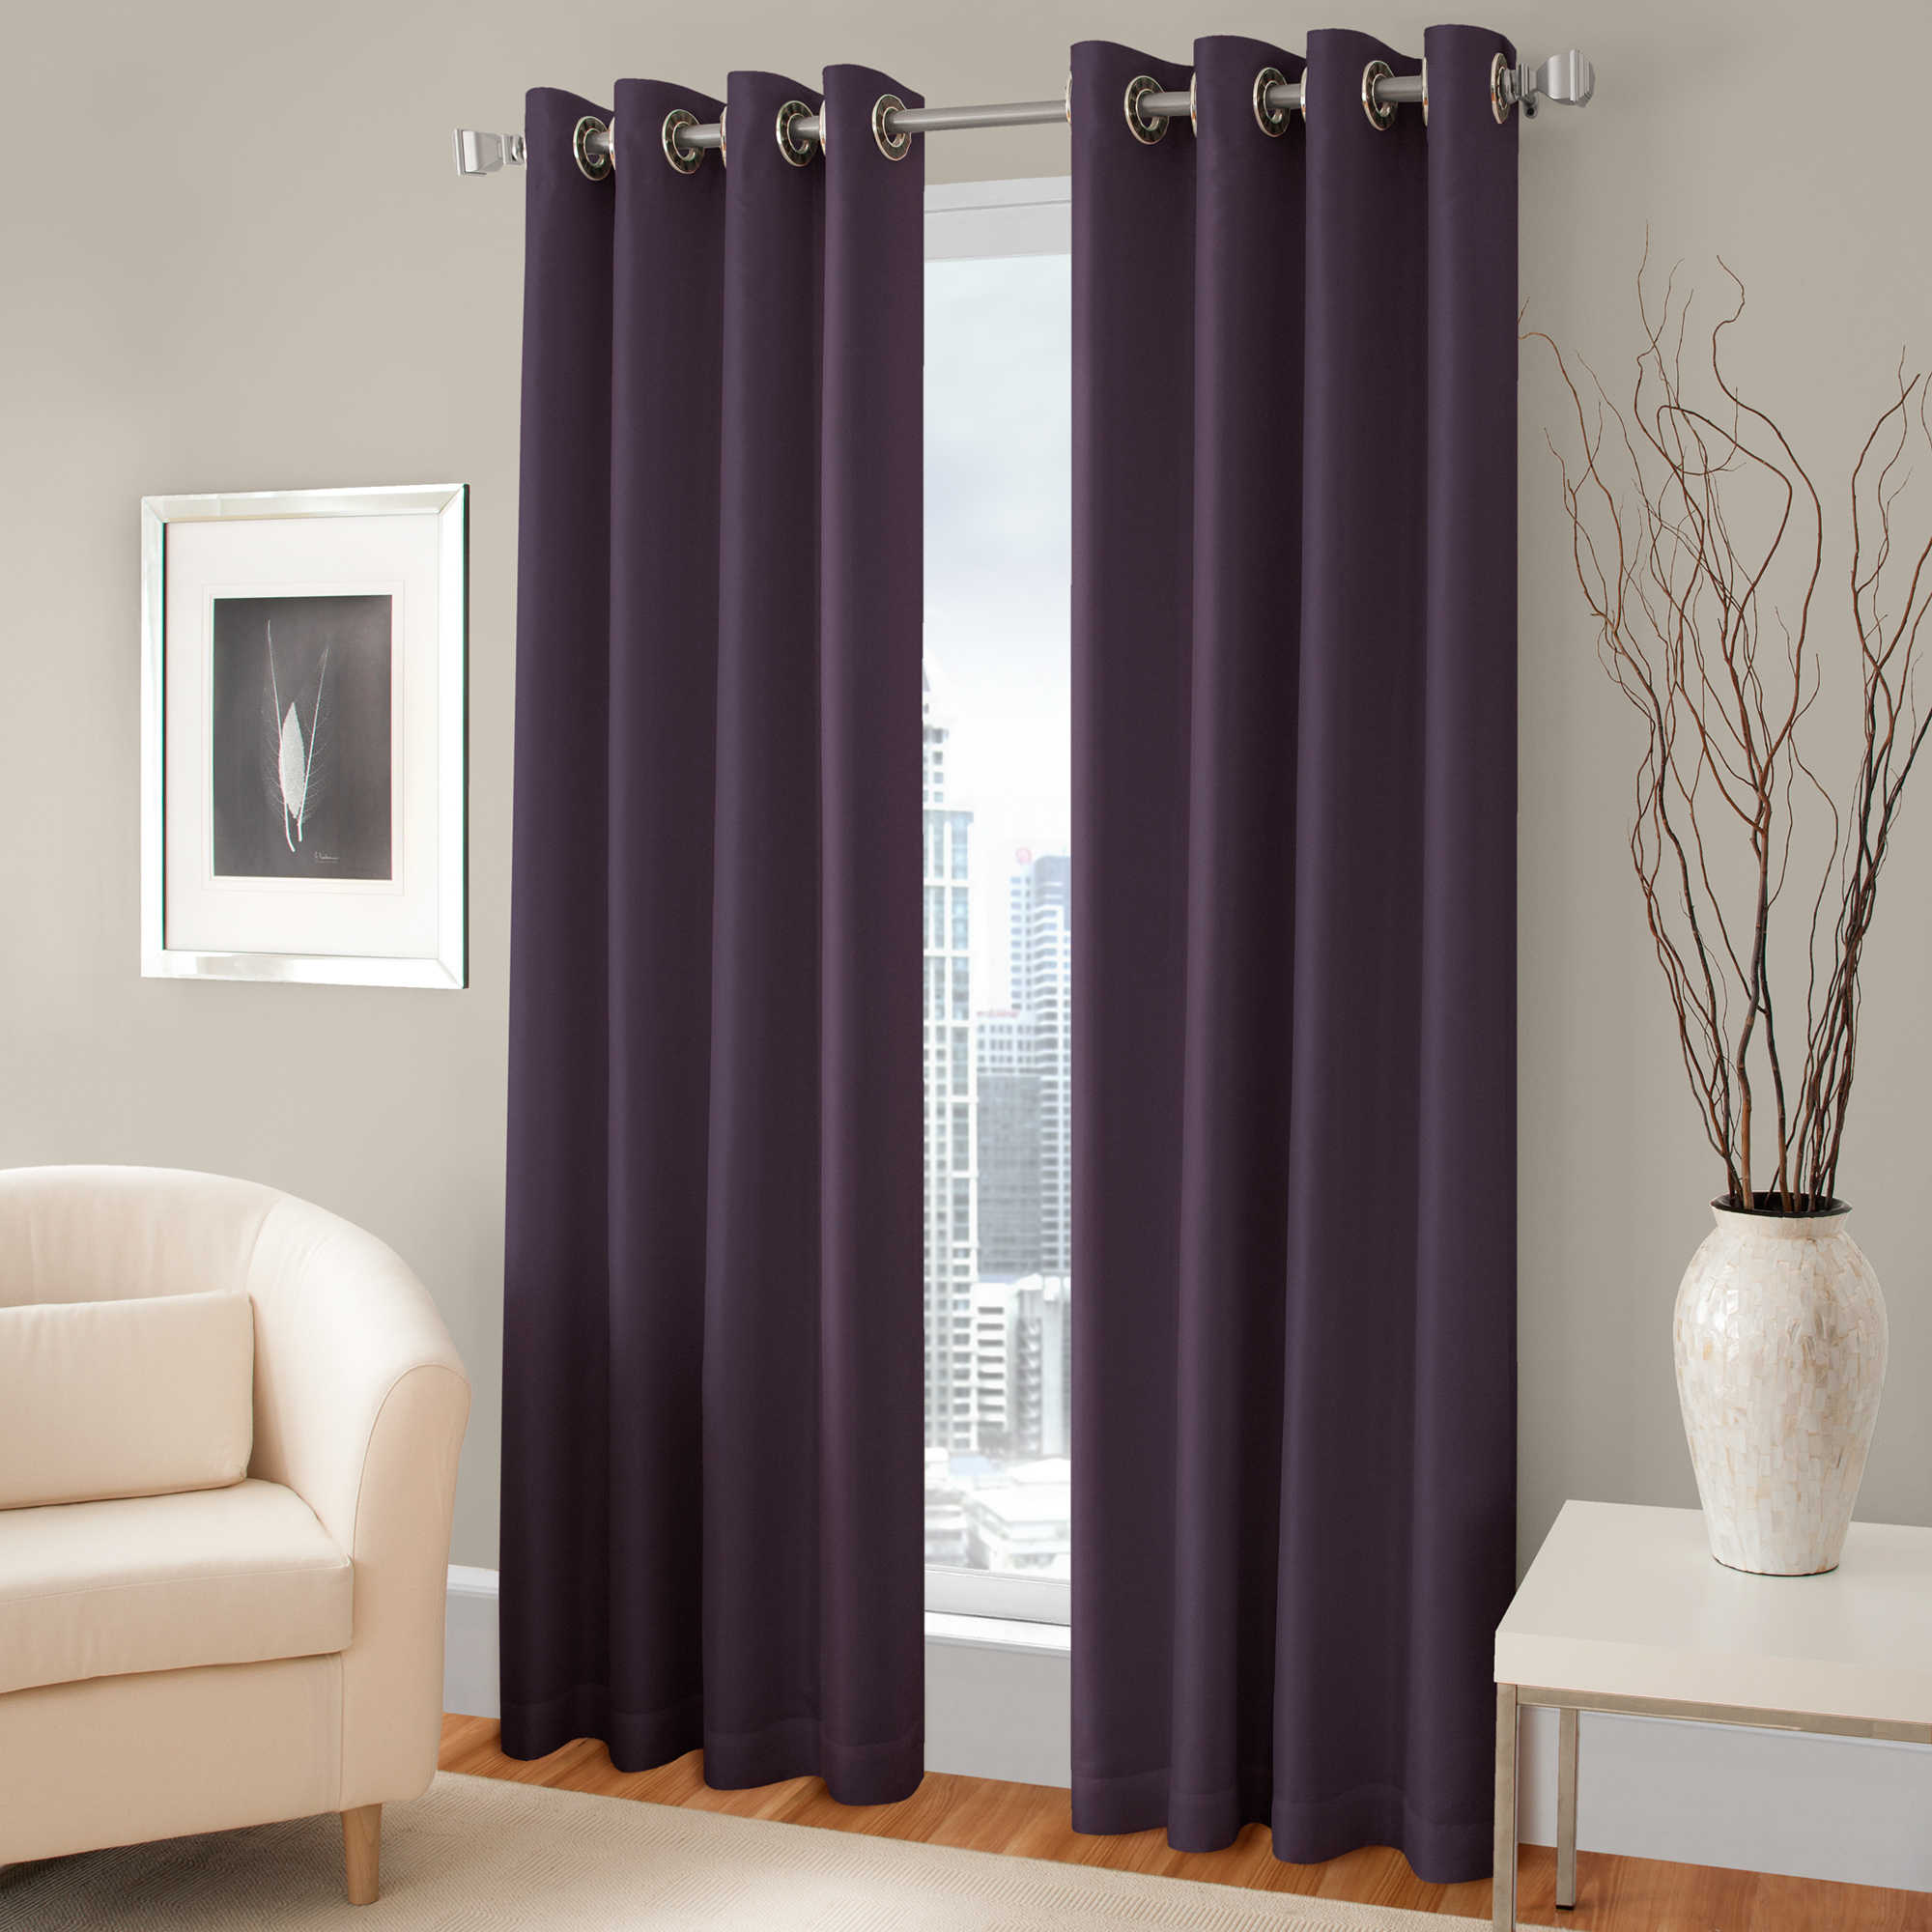 top interior patterned purple treatment plush window decofurnish for curtain grommet curtains dark idea designs